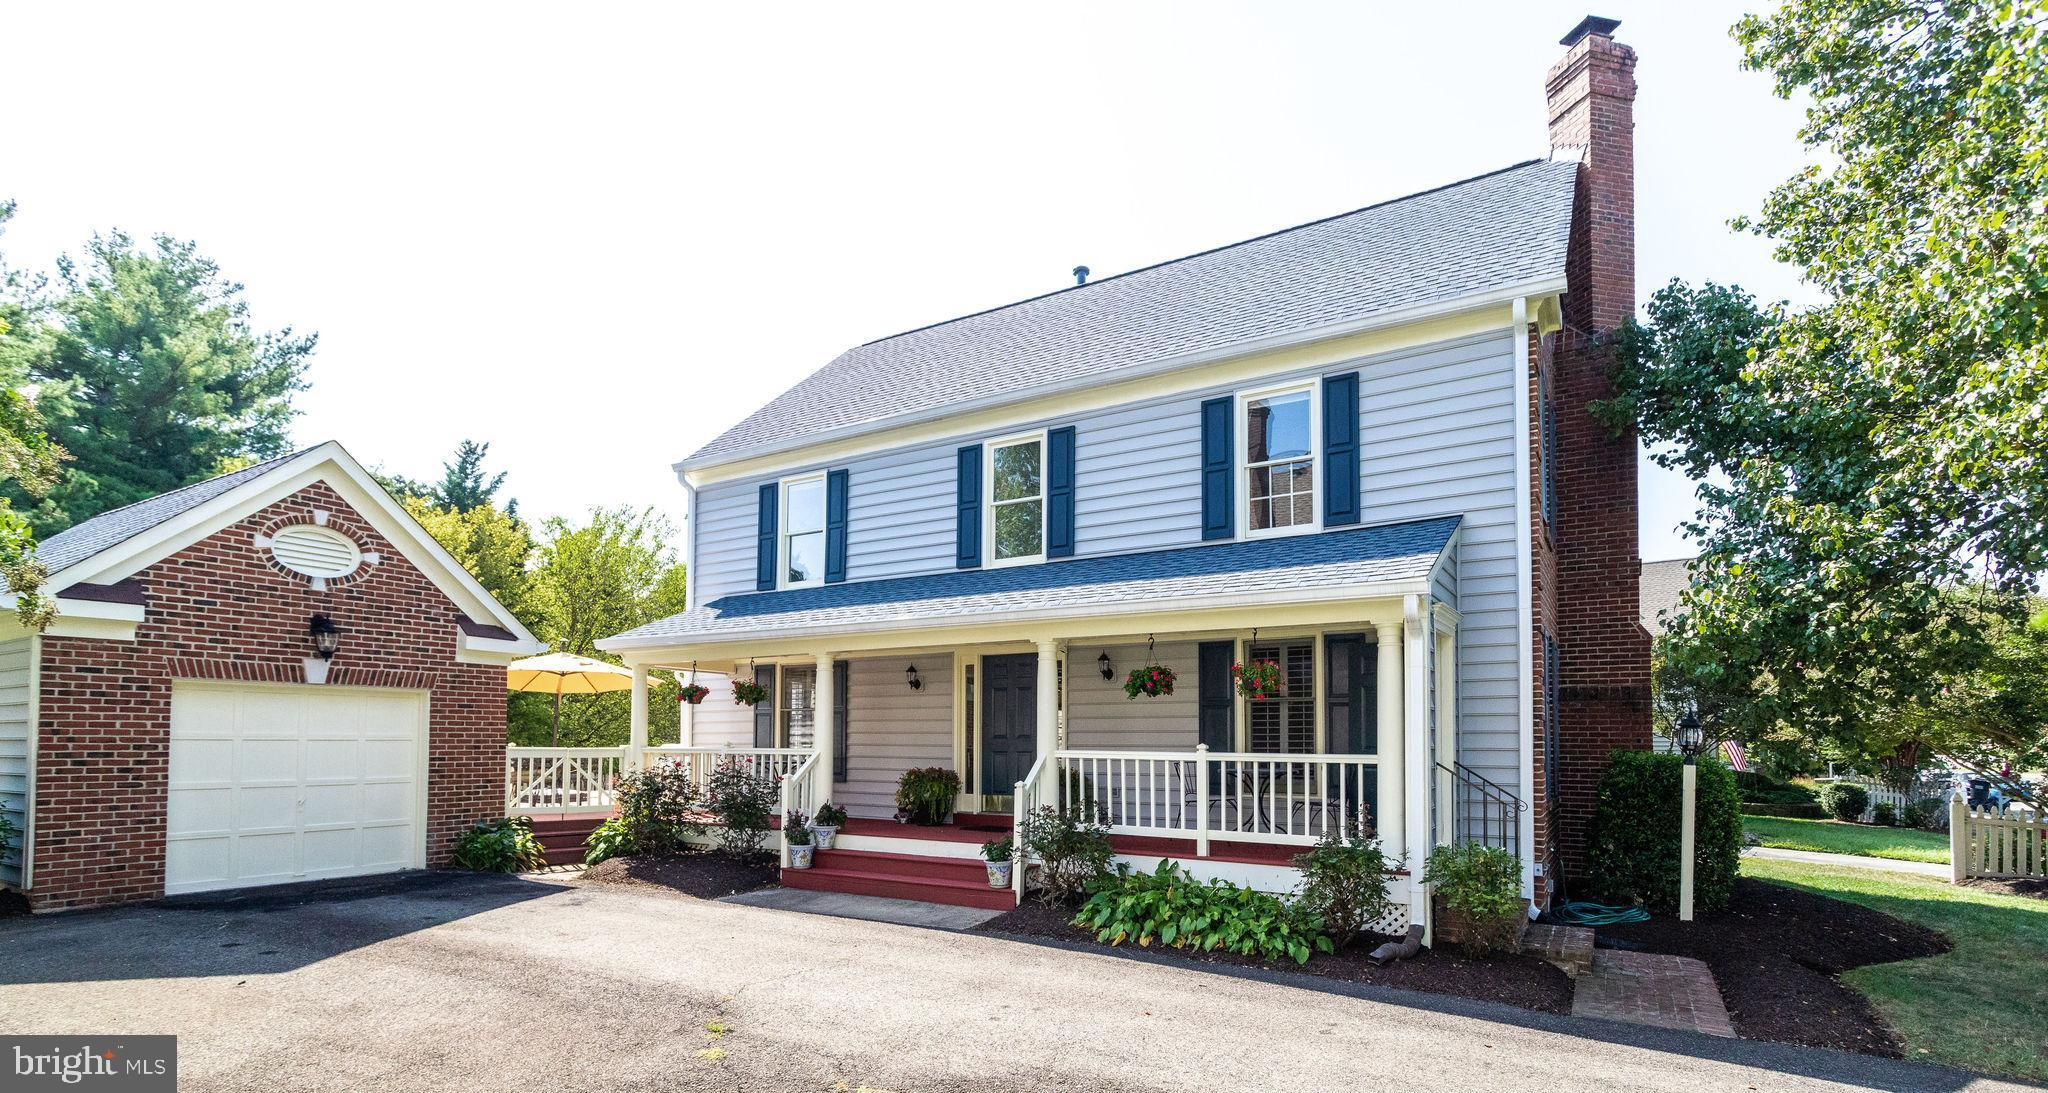 A Southern Charmer in New Charleston. A Graceful Front Porch Greets you and offers you a view to this picturesque neighborhood in the heart of Springfield.  The inside will charm you as well.  Newly re-finished hardwood floors throughout the main level, new carpet upstairs and freshly painted everywhere.  Roof and Siding Replaced in 2018. New larger and extended gutters replaced in 2018. All new stainless appliances installed in 2017. New lighting installed throughout in 2019.  The front porch has been extended to greet the trex deck leading from the family room to the back yard.  Perfect for entertaining and grilling. The backyard is flat and is fenced - the perfect playground for everyone, including pets. Backs to common area, so your view is extended.  This is one of the prettiest neighborhoods in the area. Stop by. You won't be disappointed.